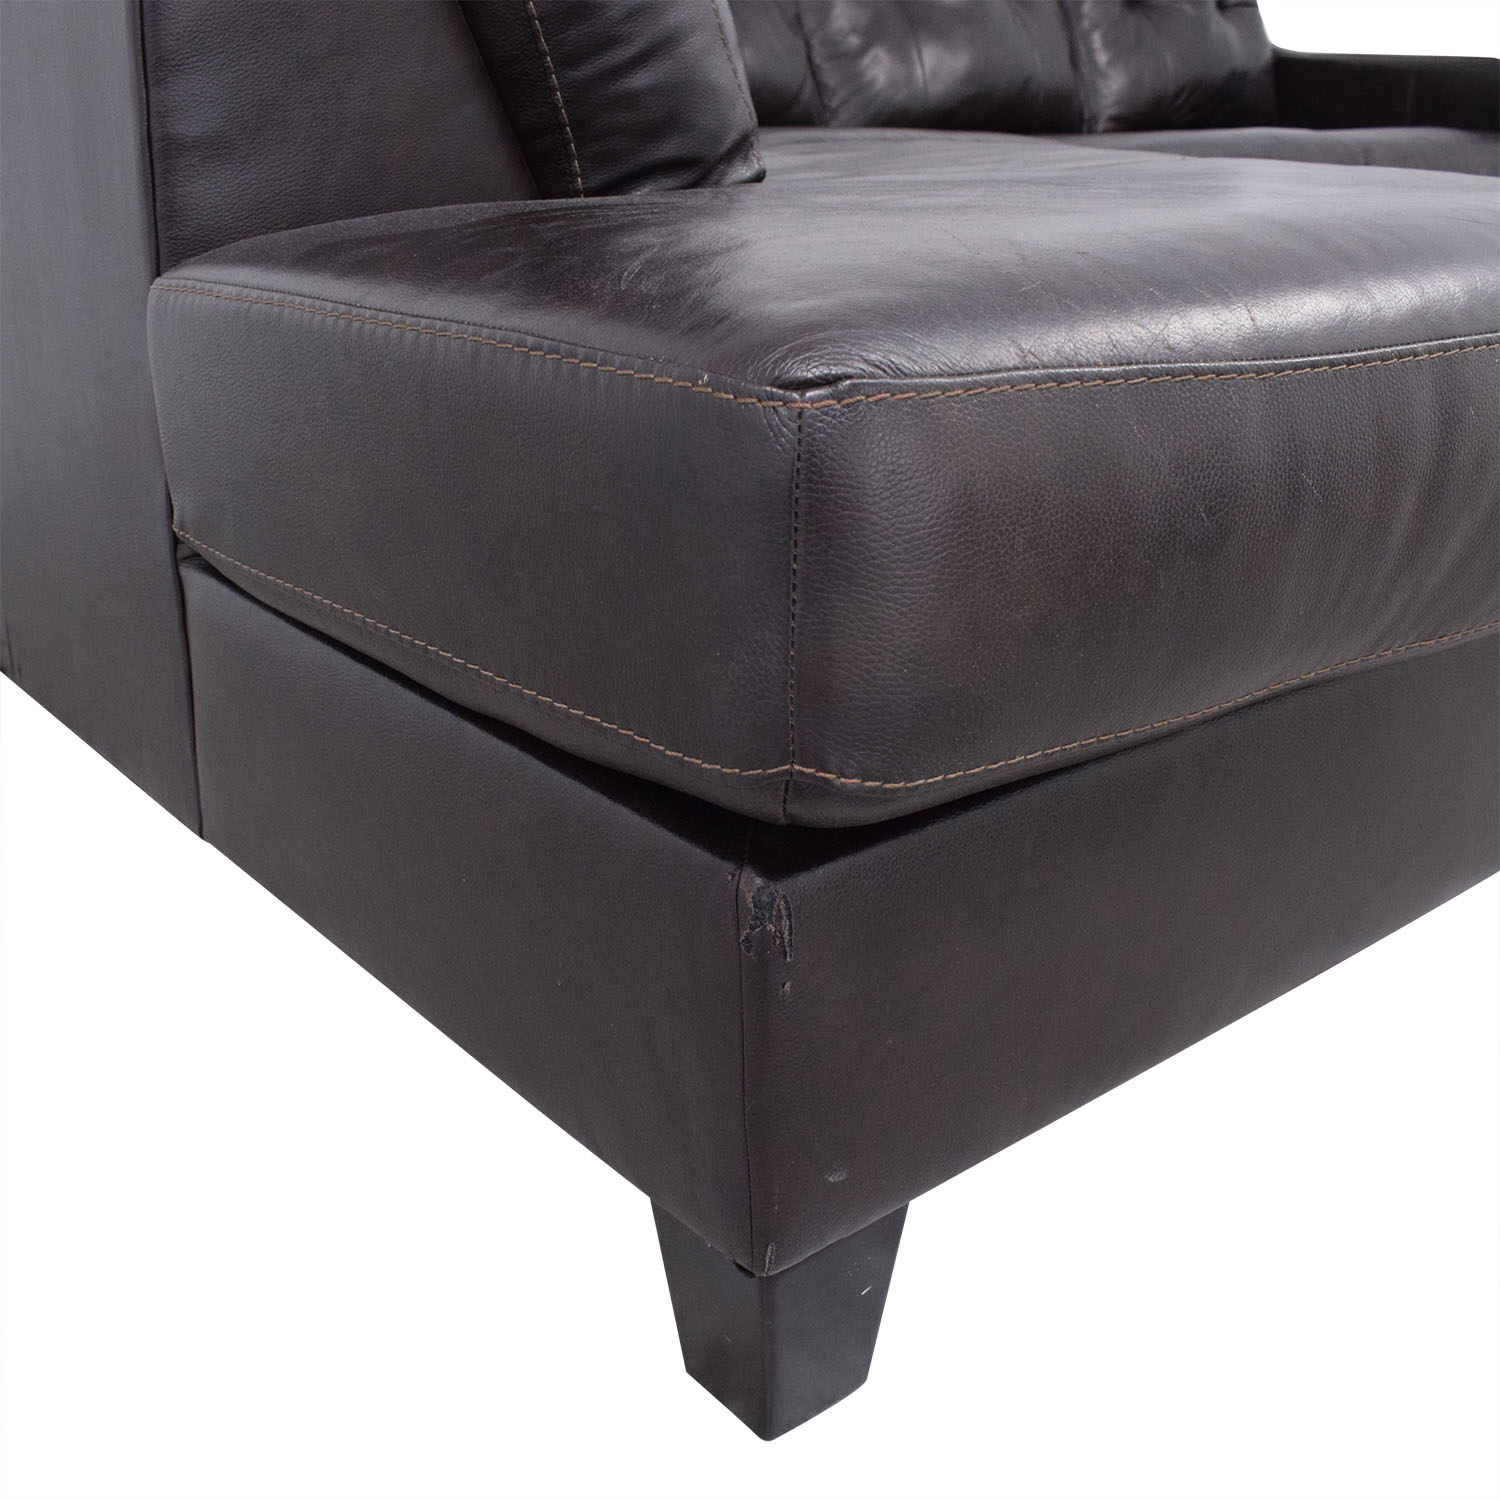 Ashley Furniture Ashley Furniture Chaise Sectional Sofa dimensions